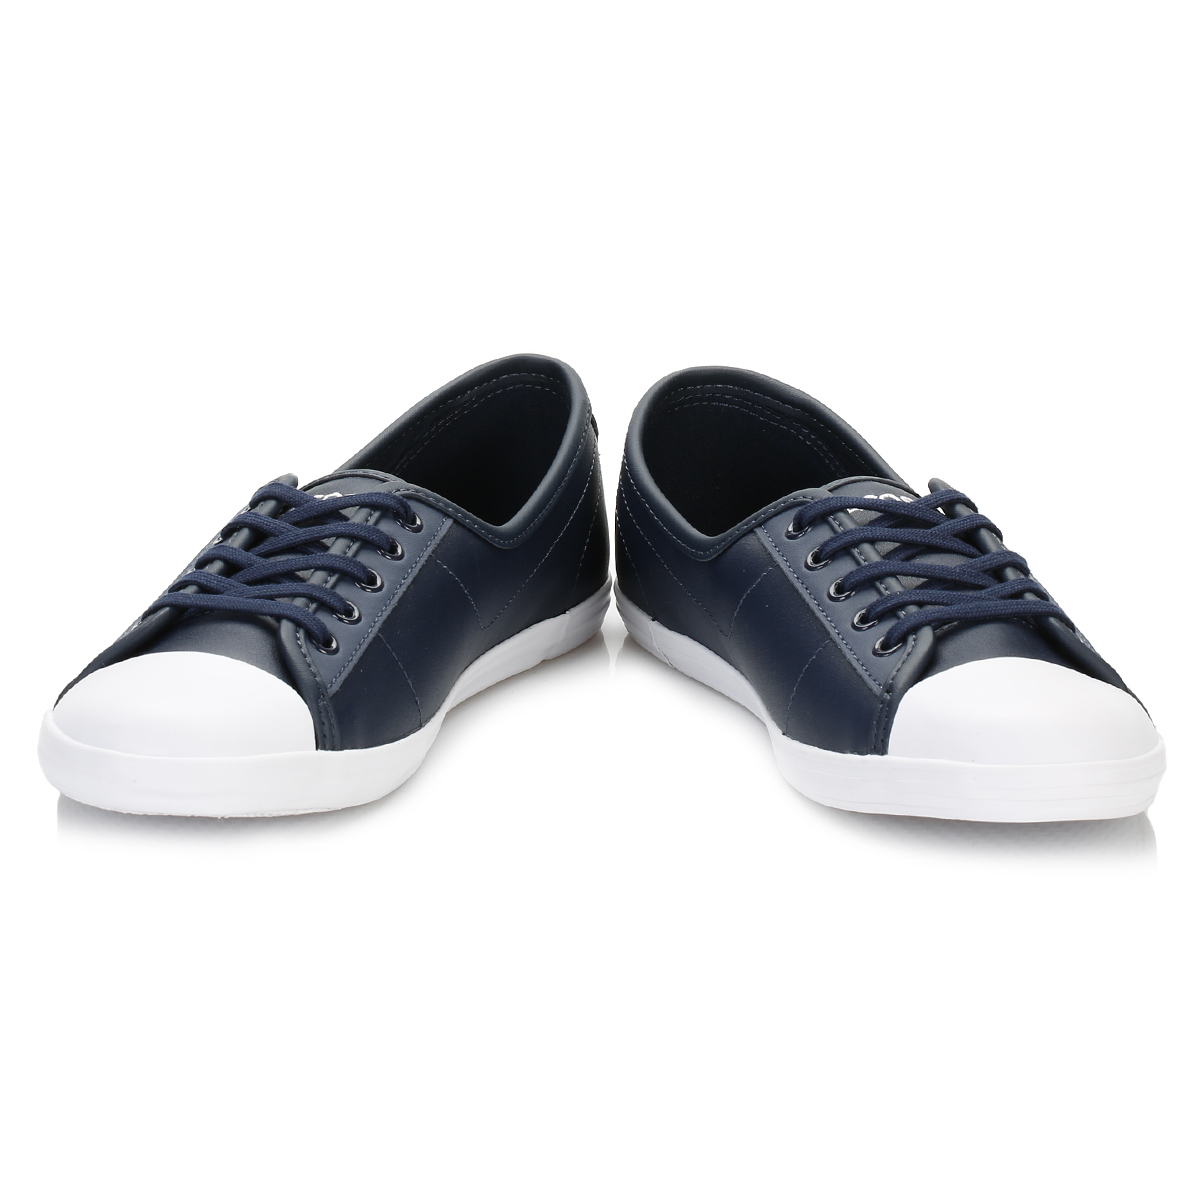 3825299bb95c9 Lacoste Womens Navy Blue Ziane BL 1 SPW Trainers Leather Casual Shoes Flats